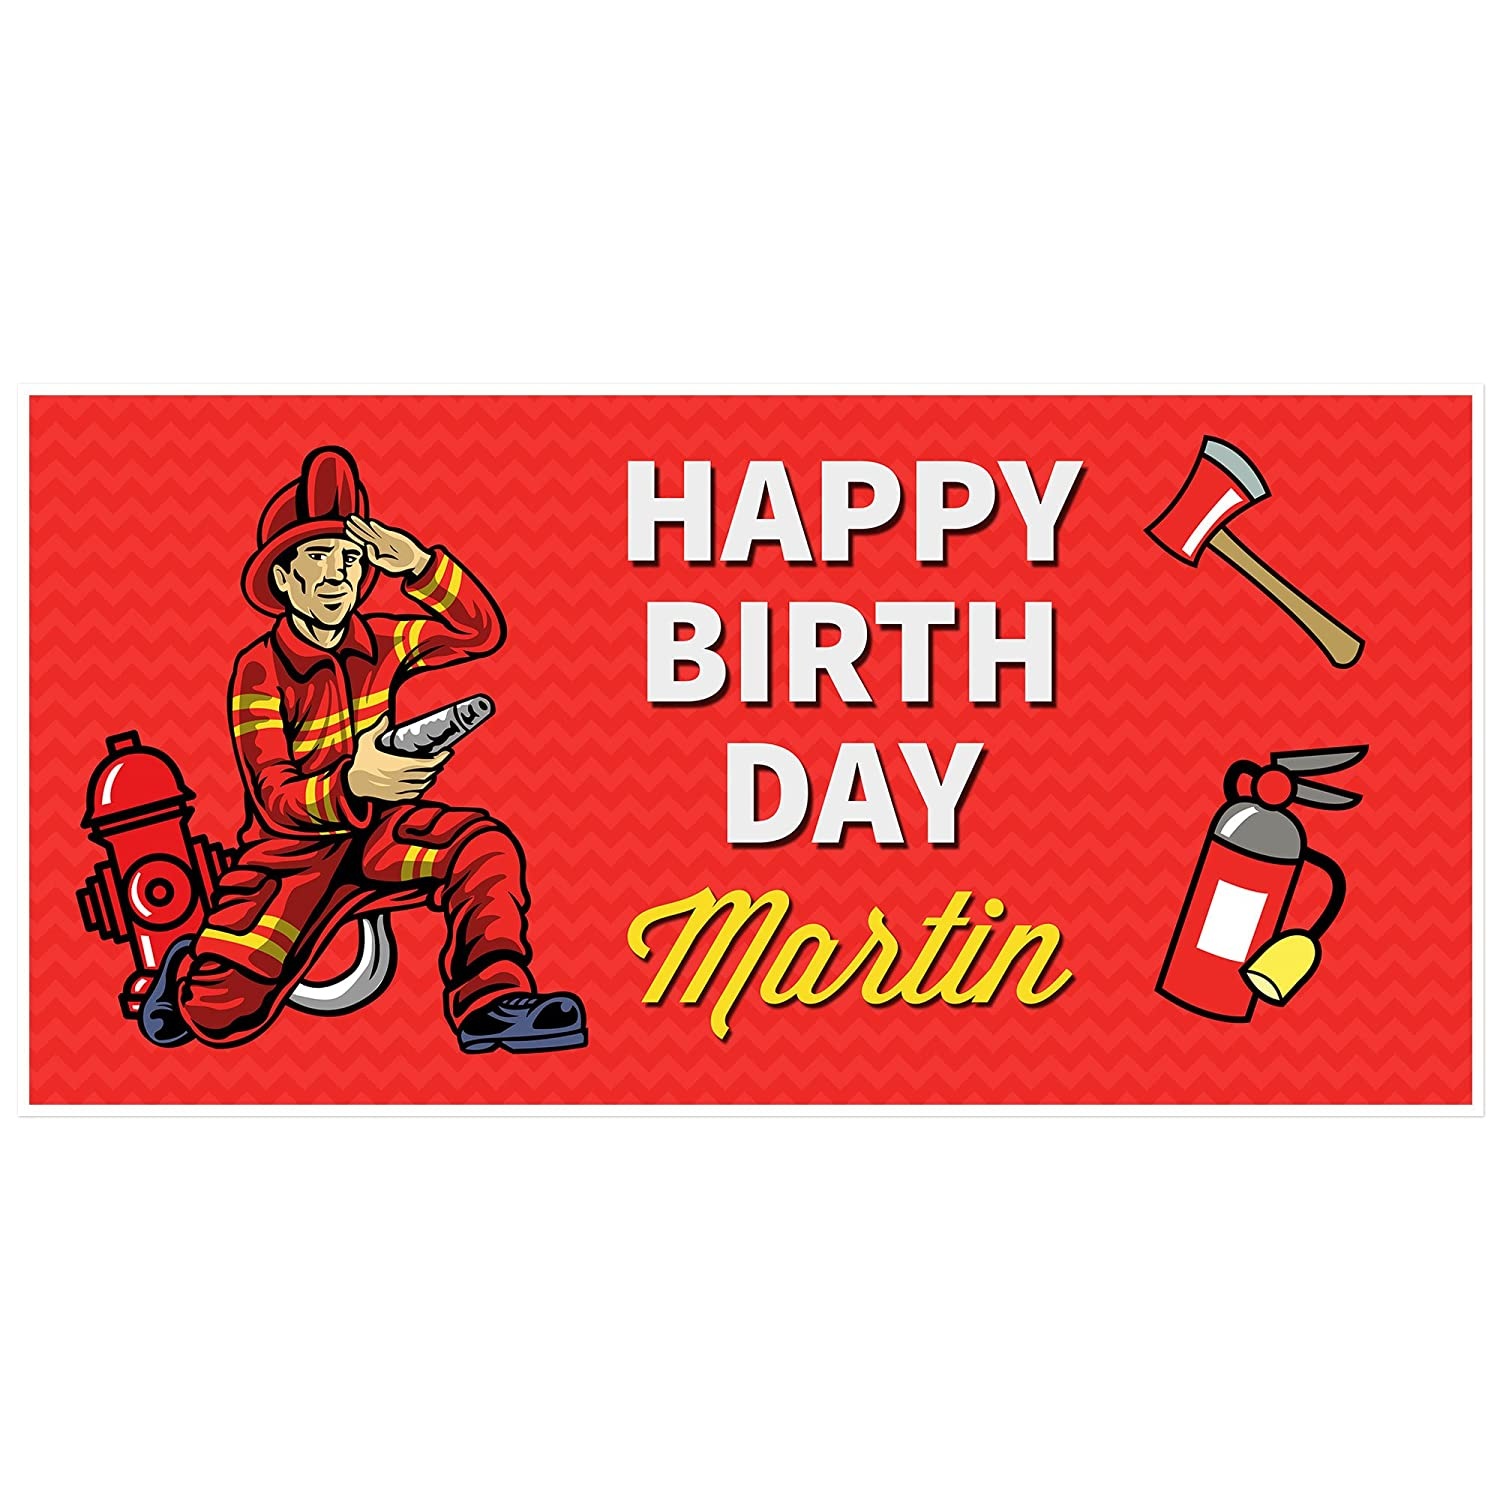 Fireman Firefighter Birthday Banner Personalized [Alternative dealer] Decoratio Party Large-scale sale